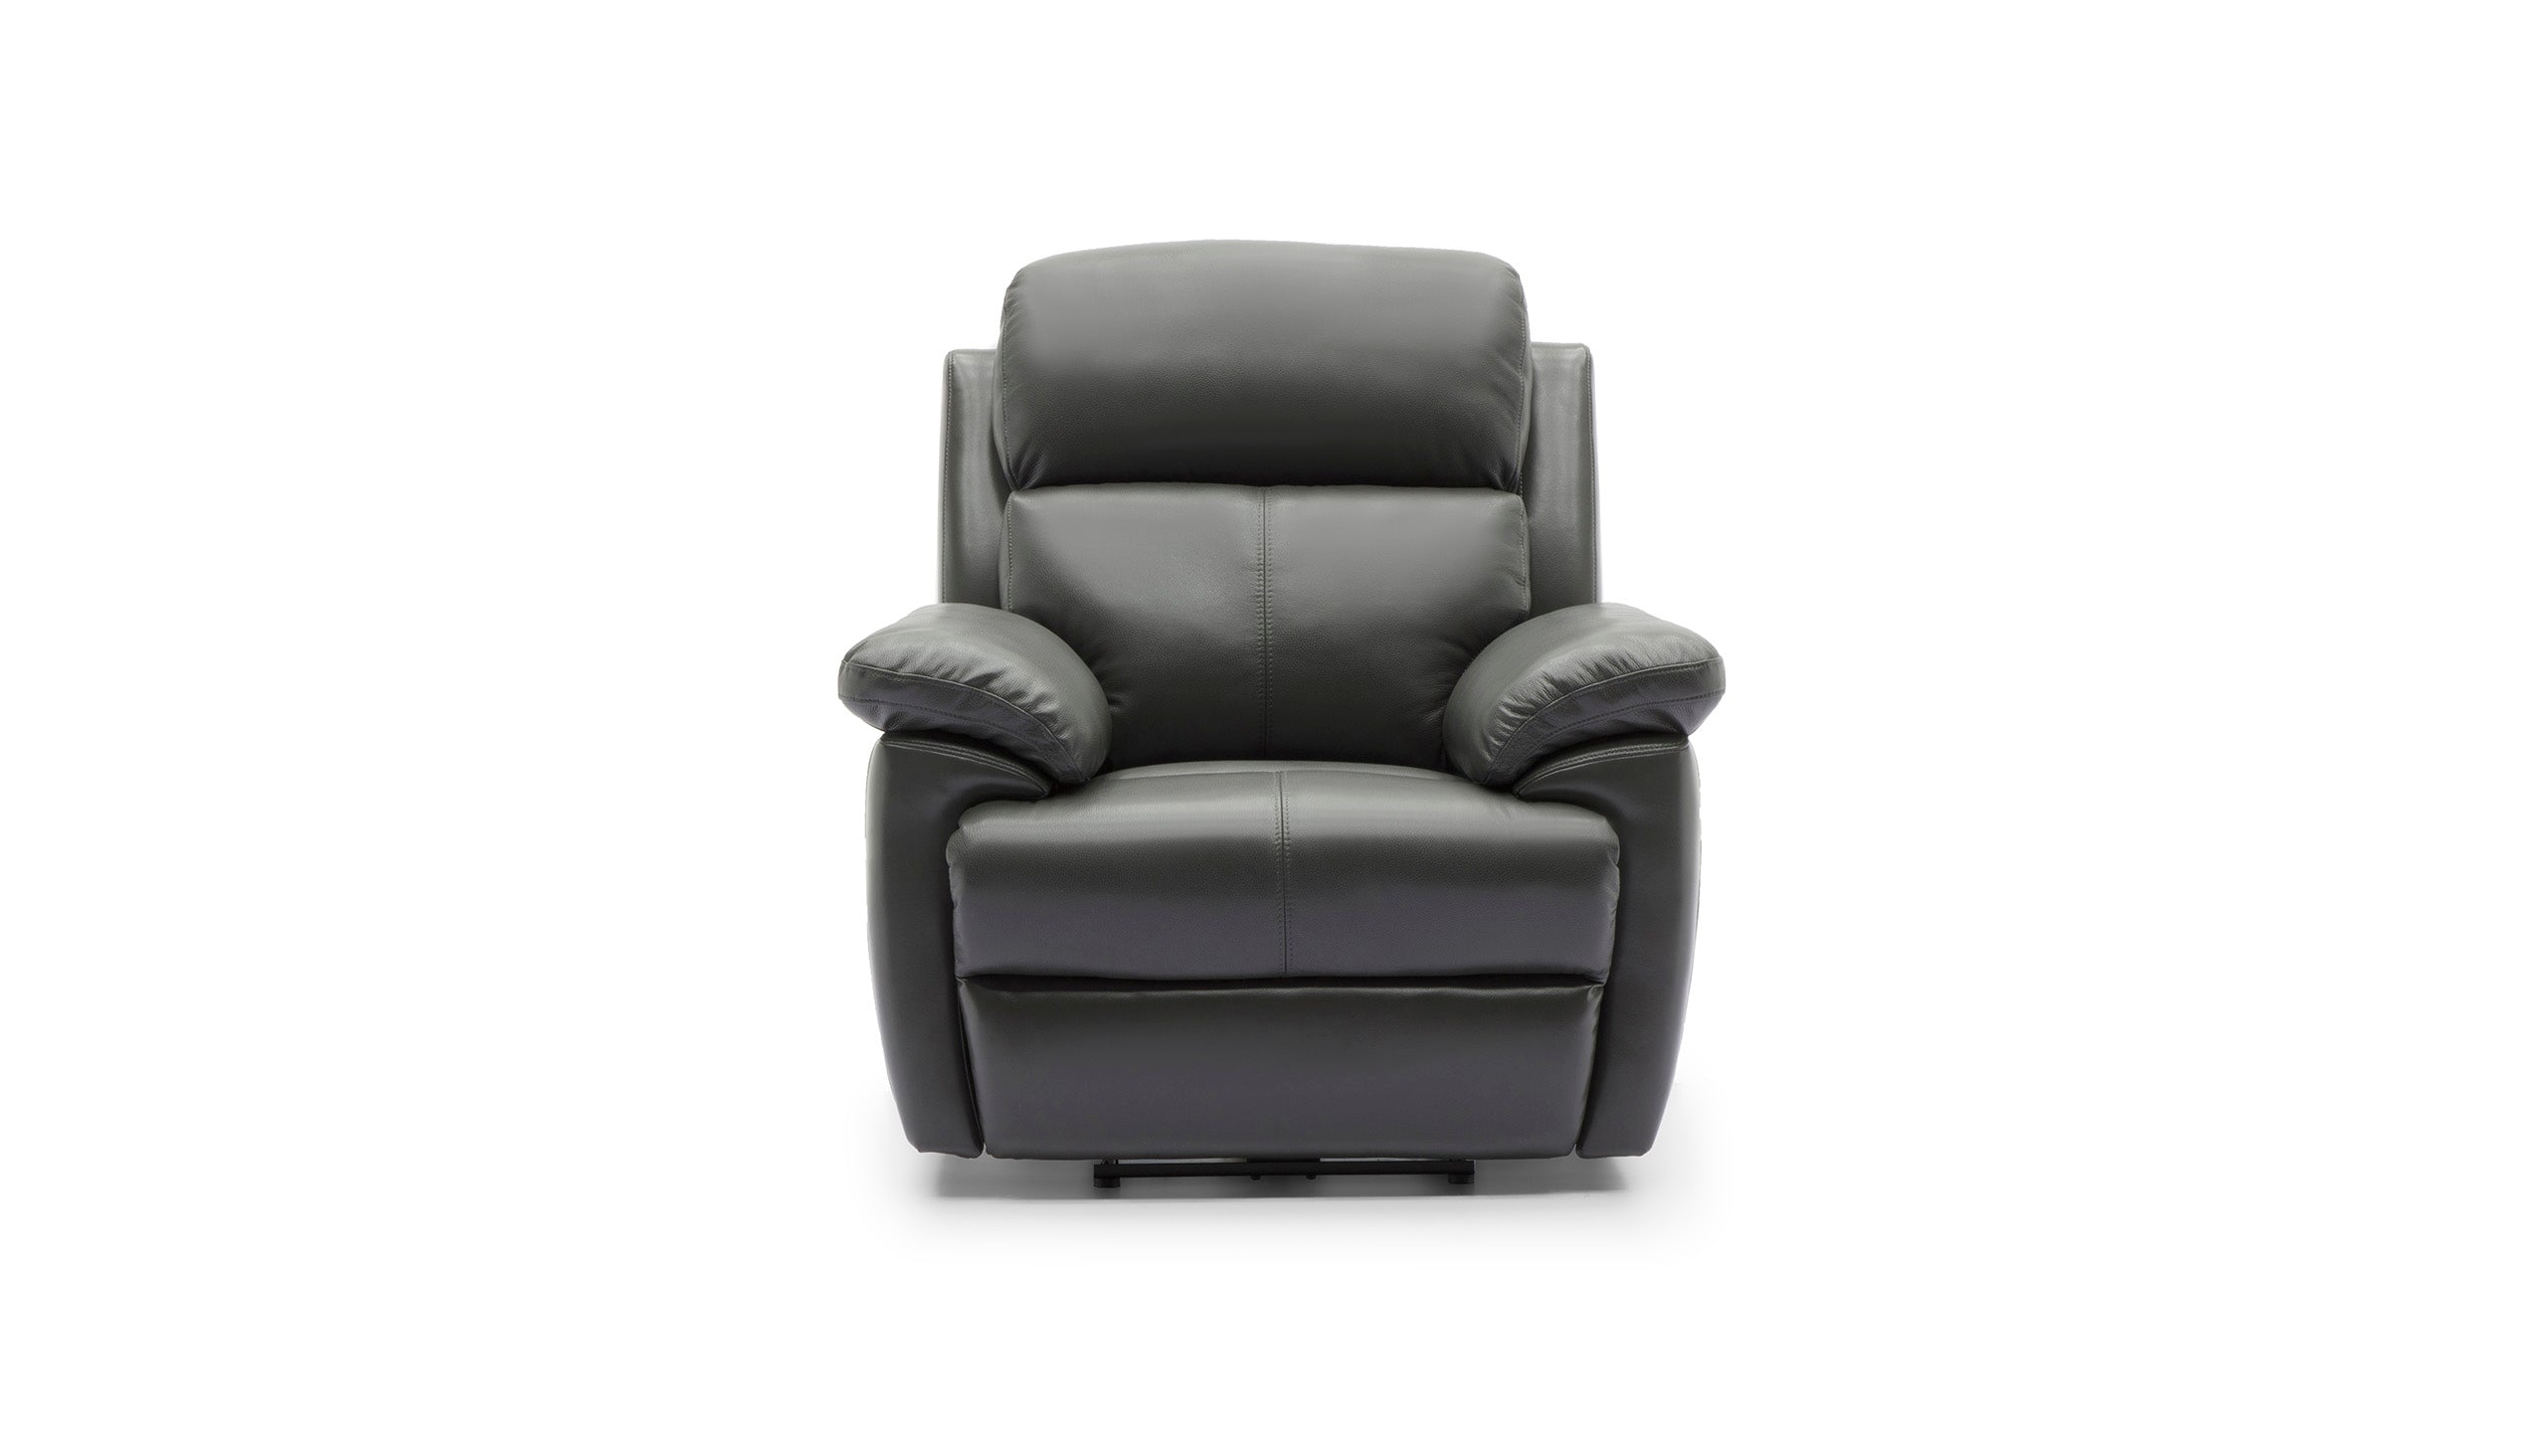 Blair Manual Recliner Armchair in Leather